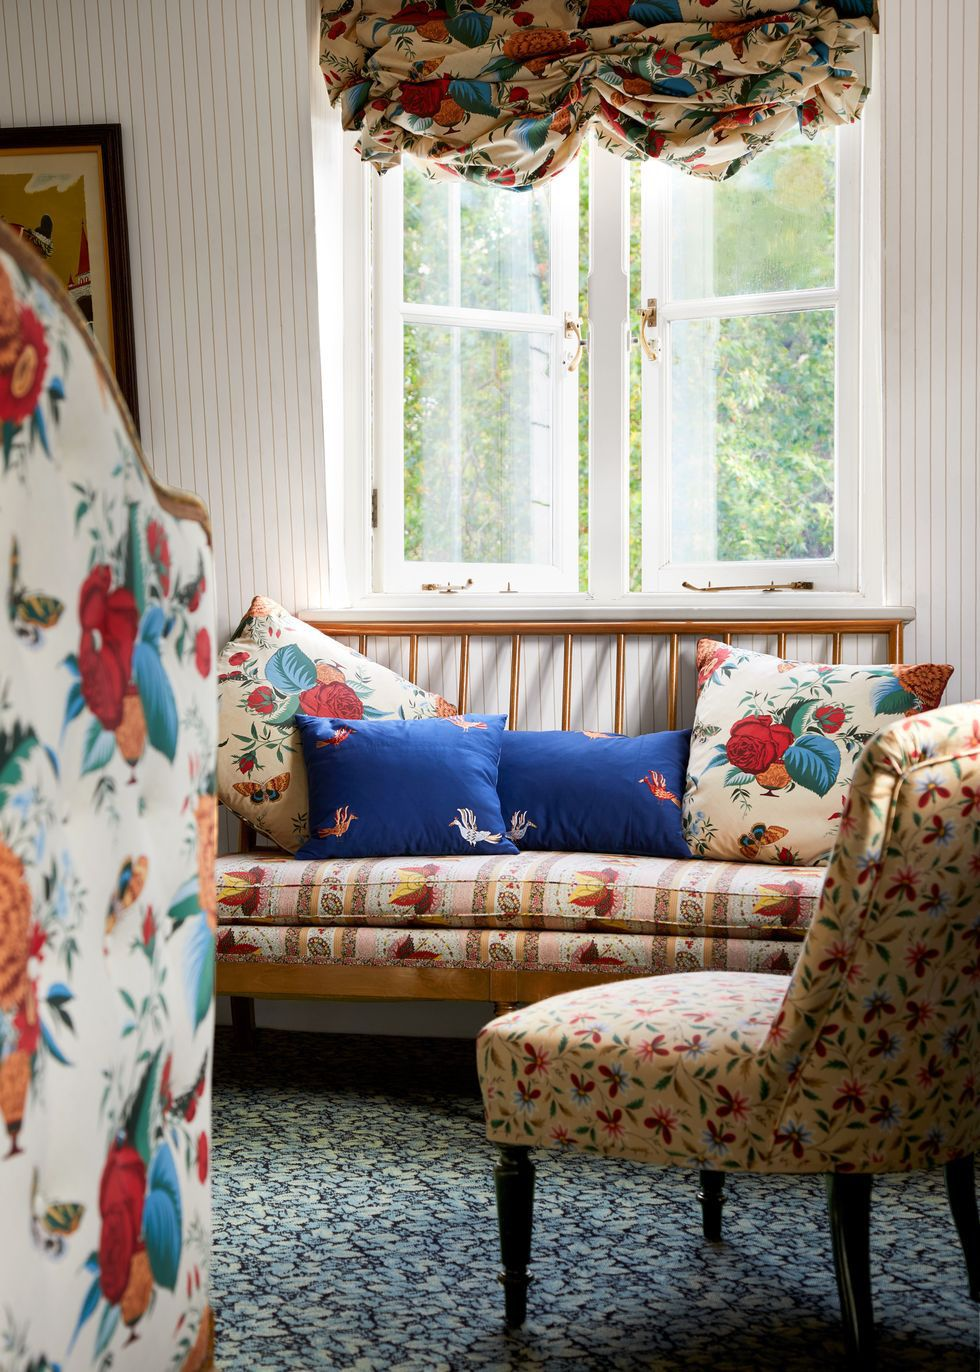 This Amazing London Home Is a Master Class in Patterns and ...